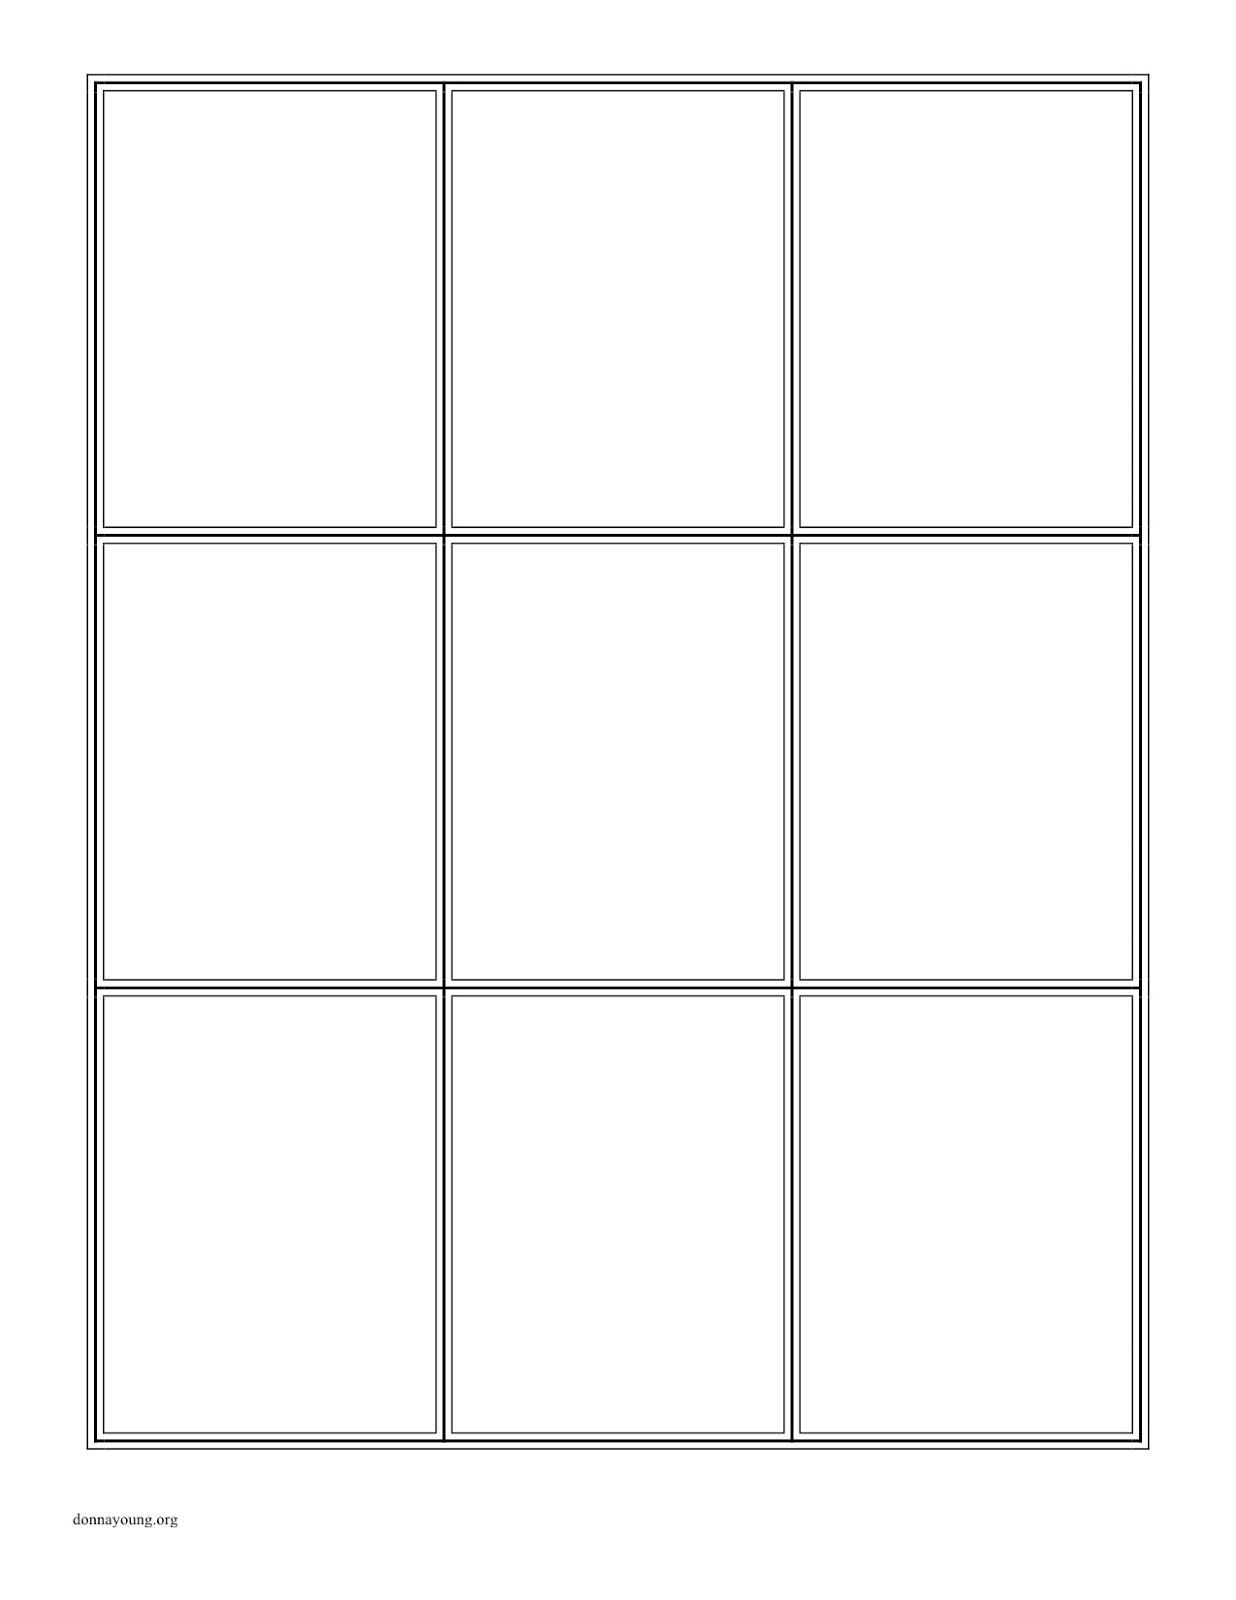 005 Free Trading Card Template Maker Ideas Board Game Blank With